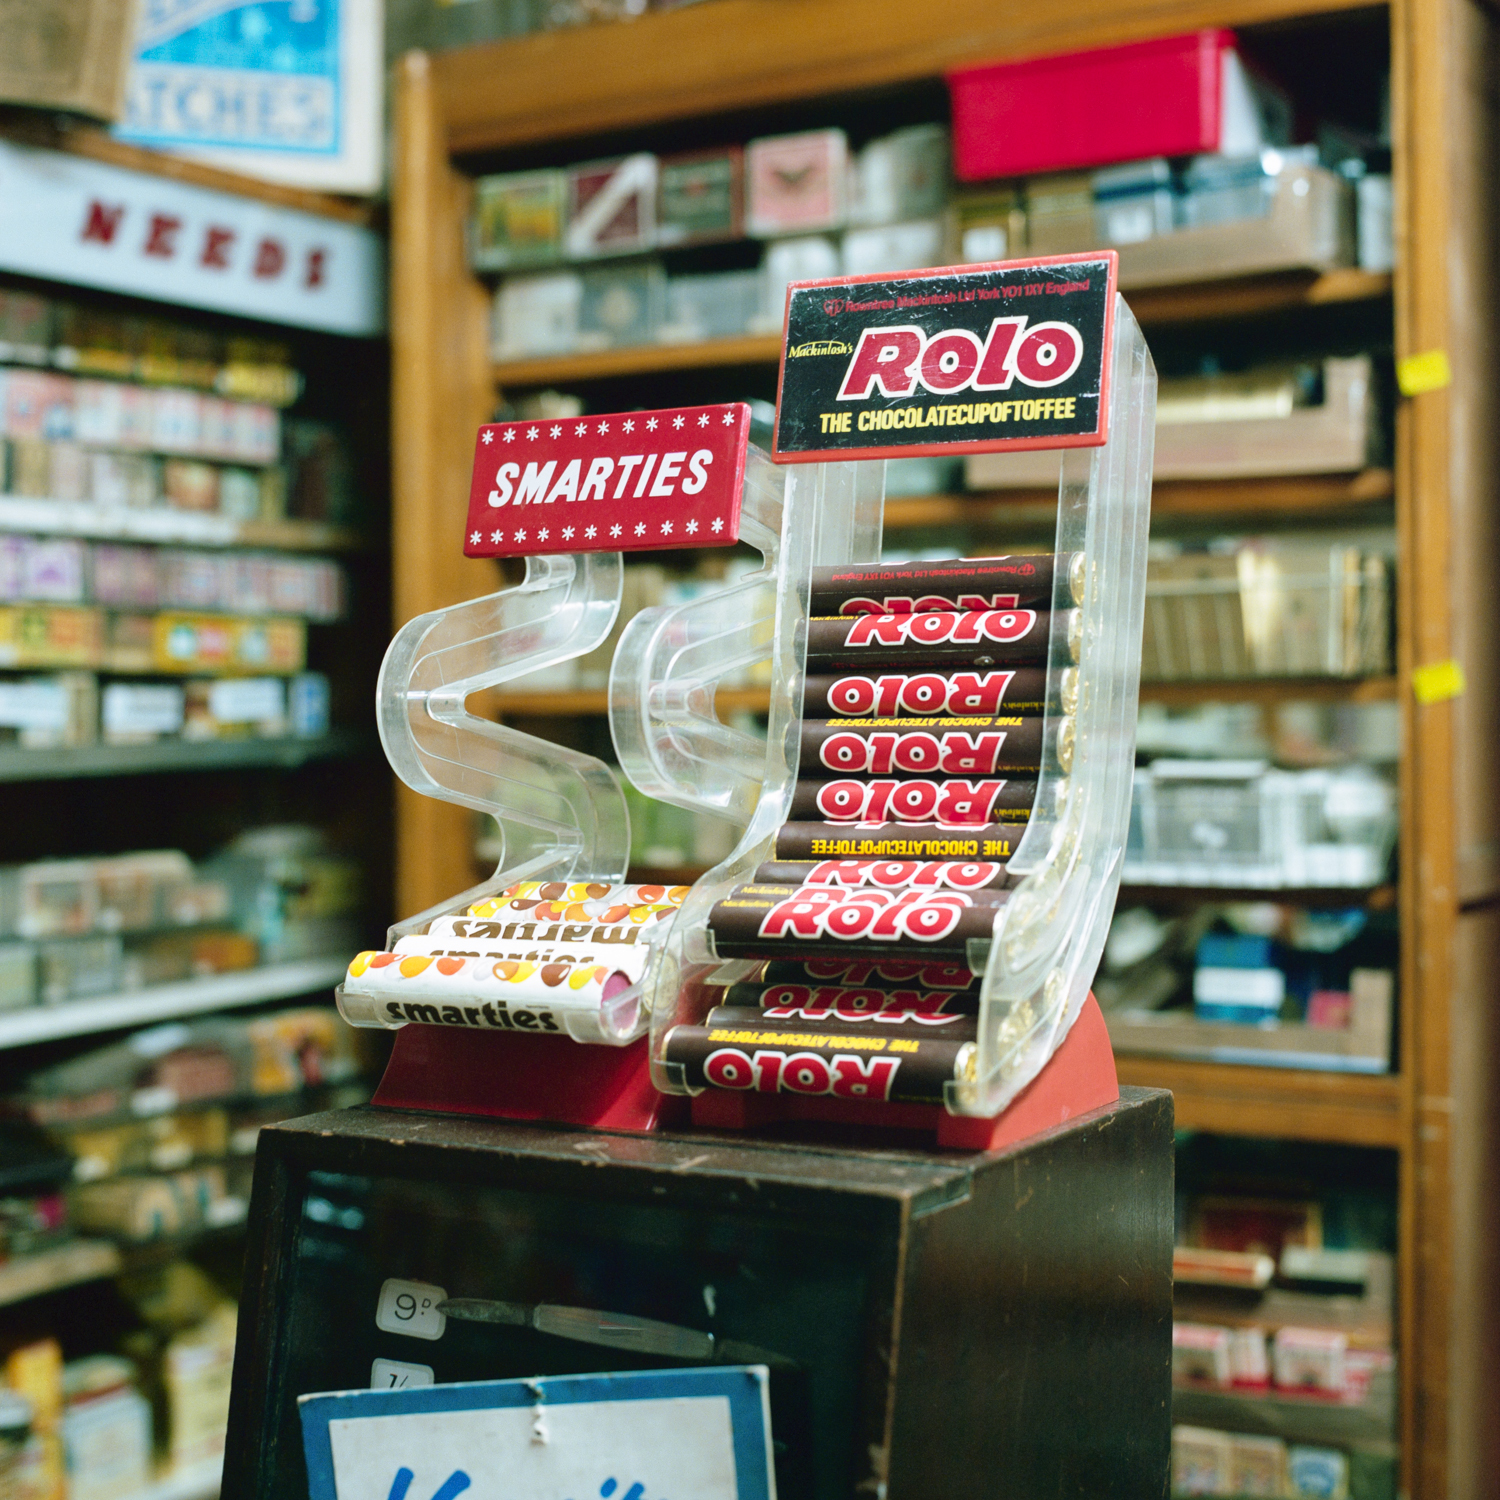 Smarties and Rolo display cases from the 1970s